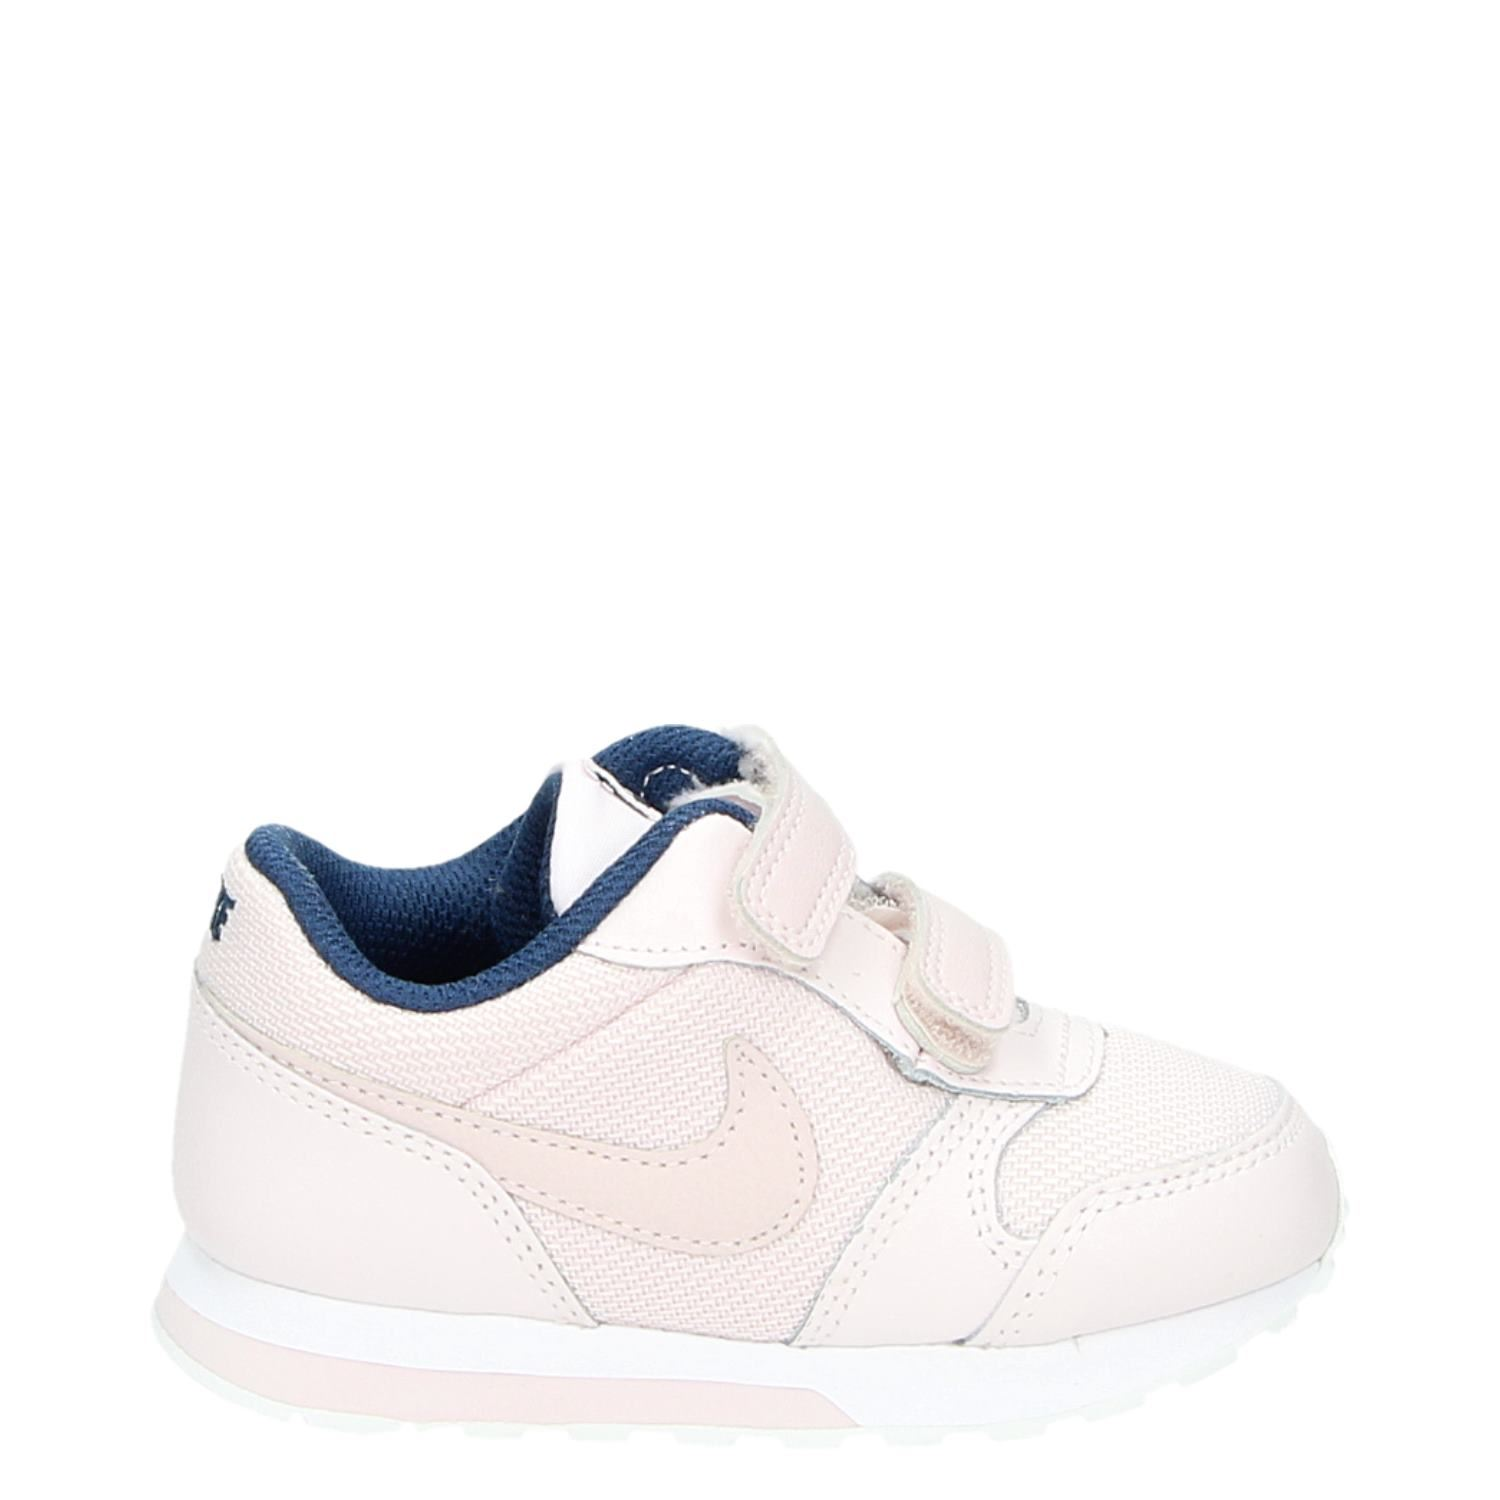 low priced 8e967 84758 Nike MD Runner 2 (TD) Tod meisjes lage sneakers